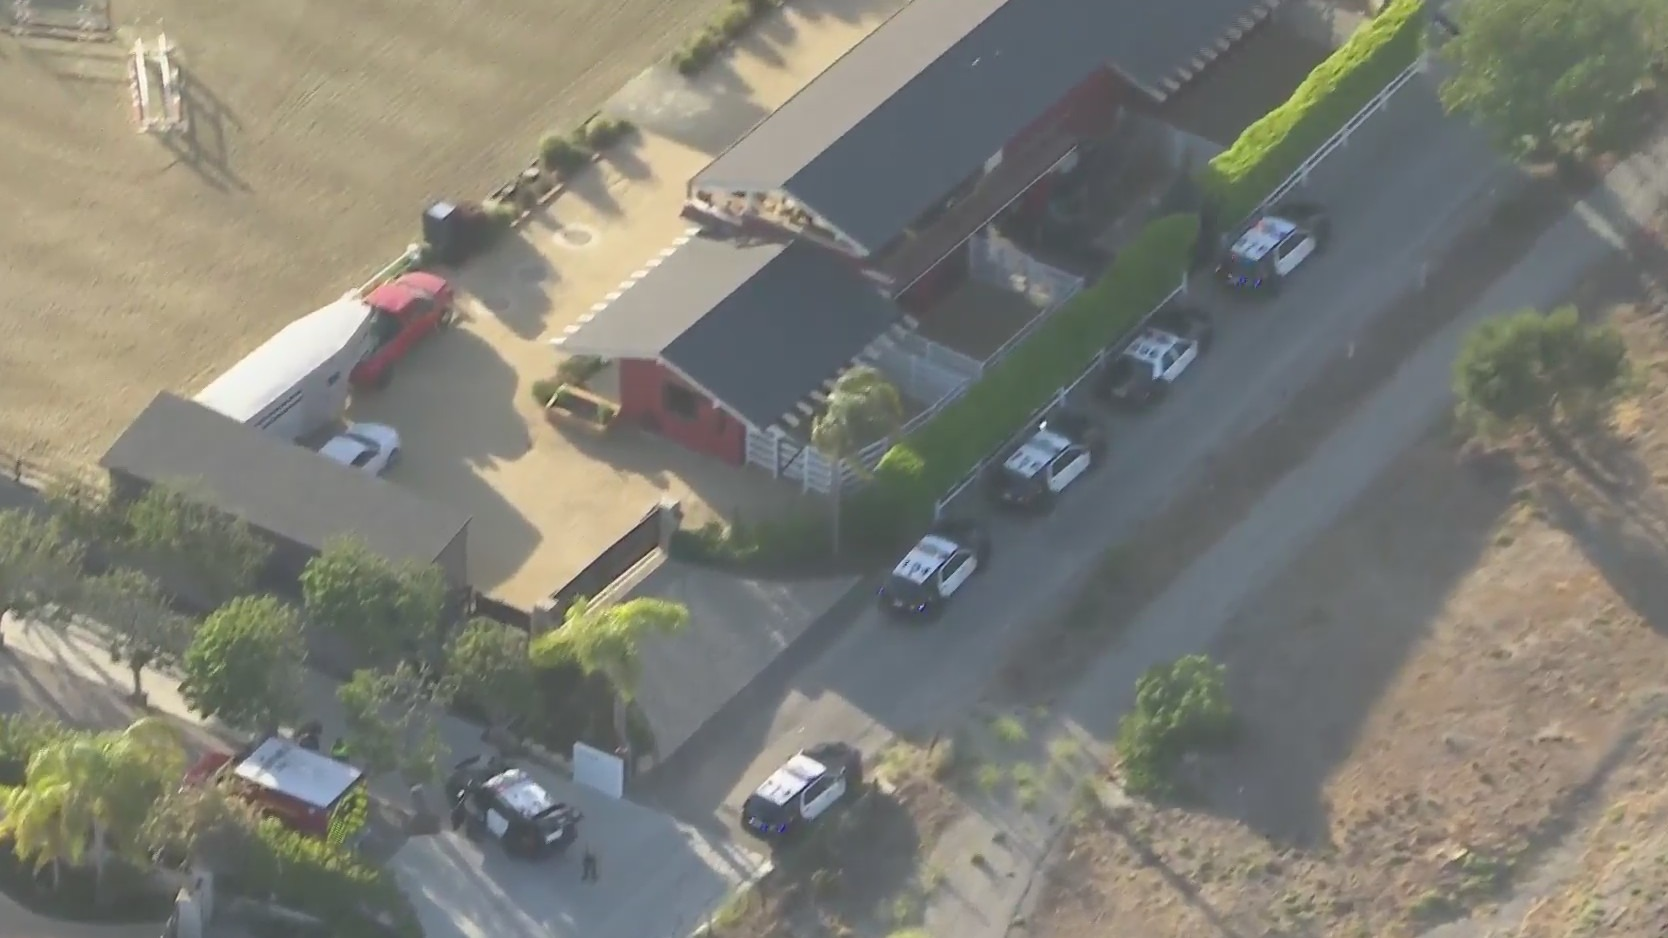 Authorities respond to investigate a shooting death in Malibu on May 21, 2021. (KTLA)